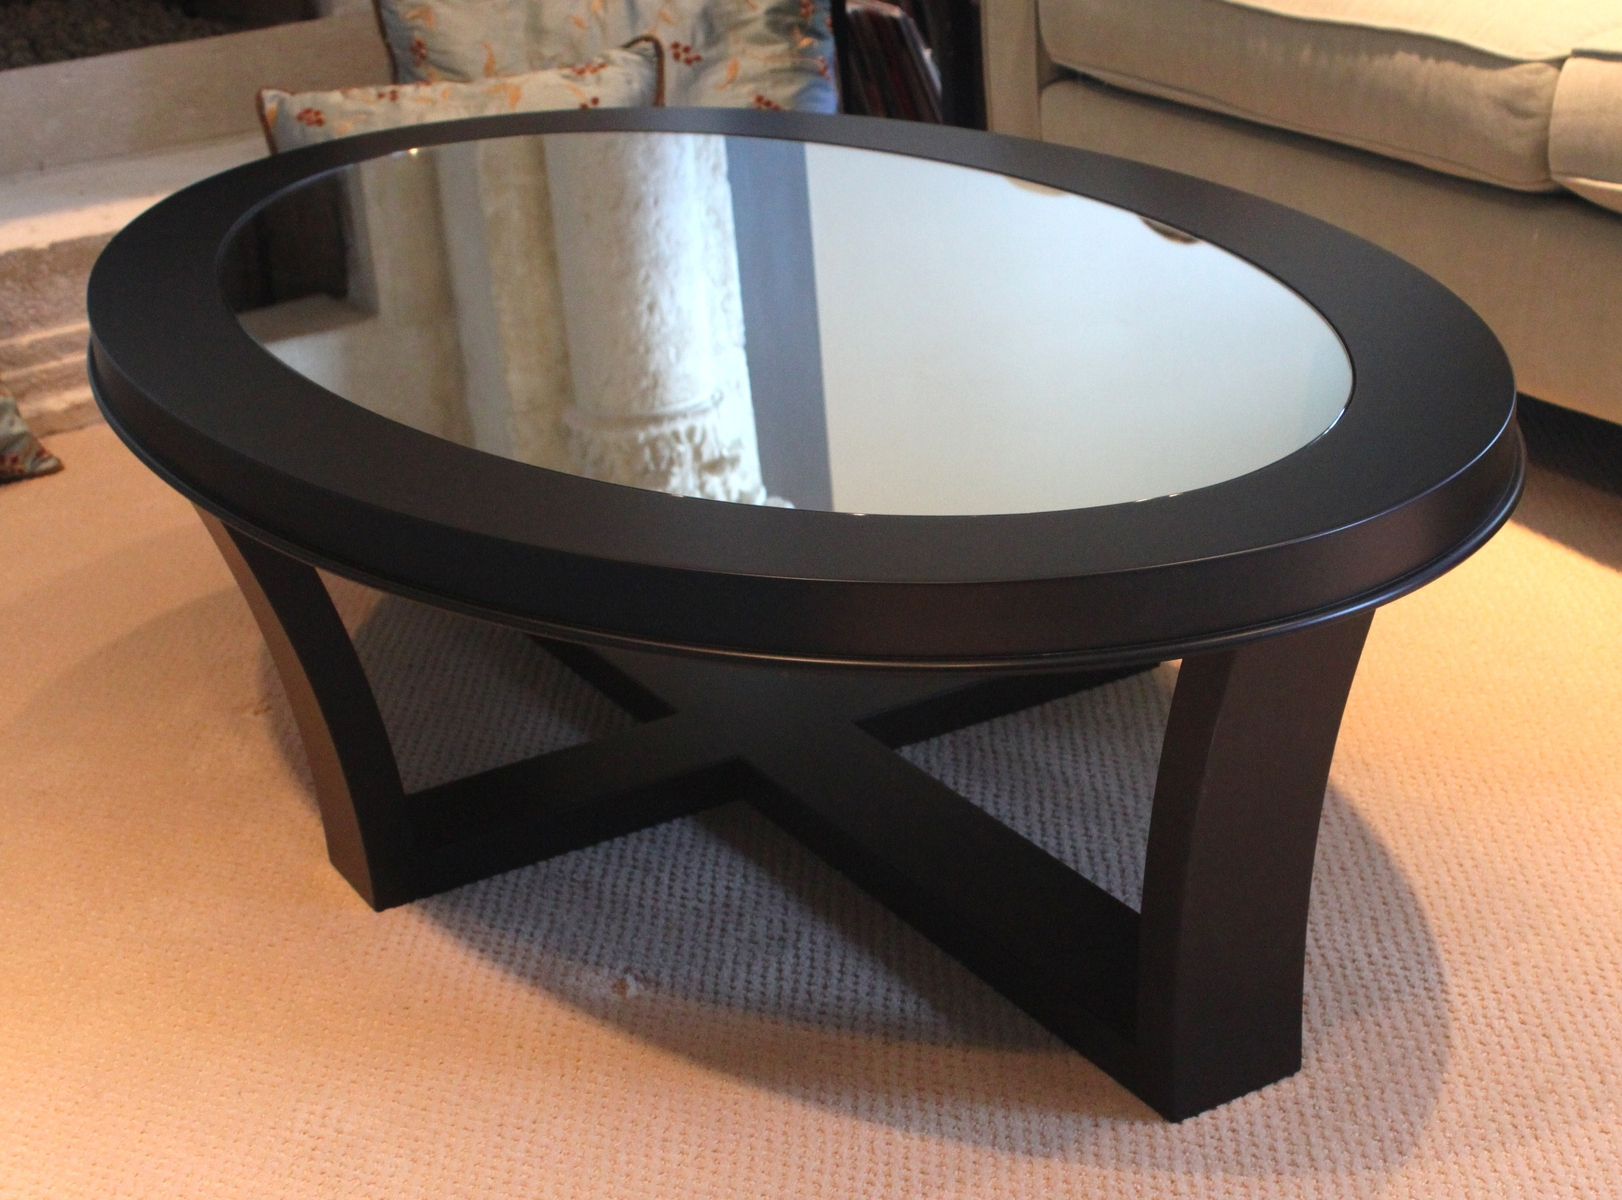 Smoked Oval Glasstop Dining Tables Pertaining To Favorite Furniture: Smoked Glass Coffee Table (View 18 of 25)